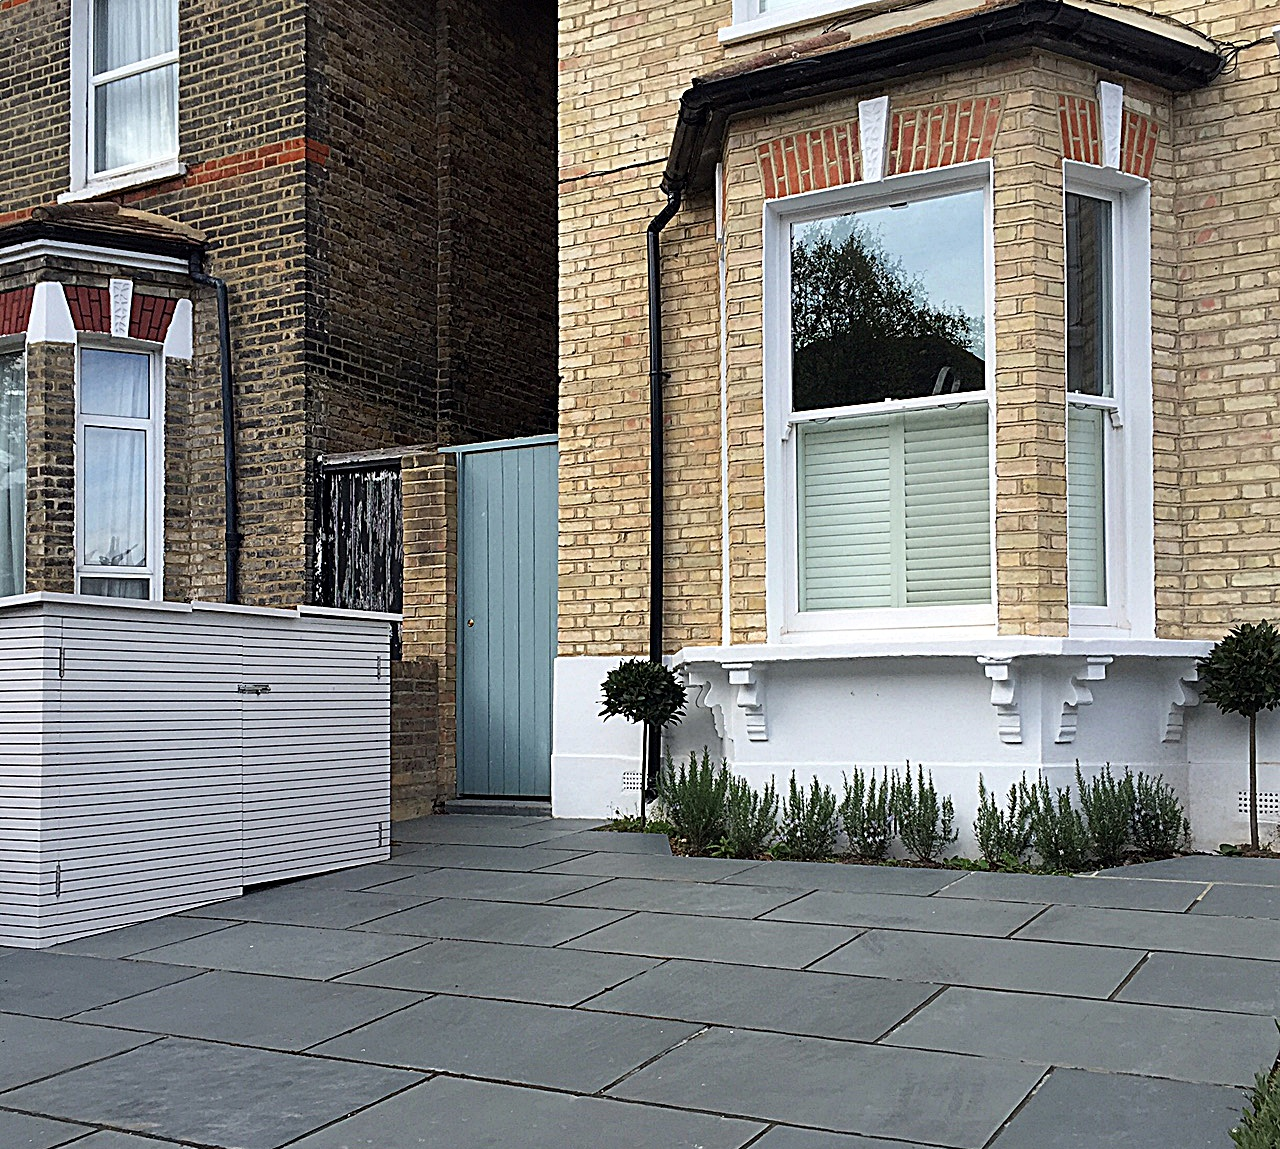 Bespoke bin store driveway grey colour path tile planting front garden privacy London Dulwich Balham Clapham